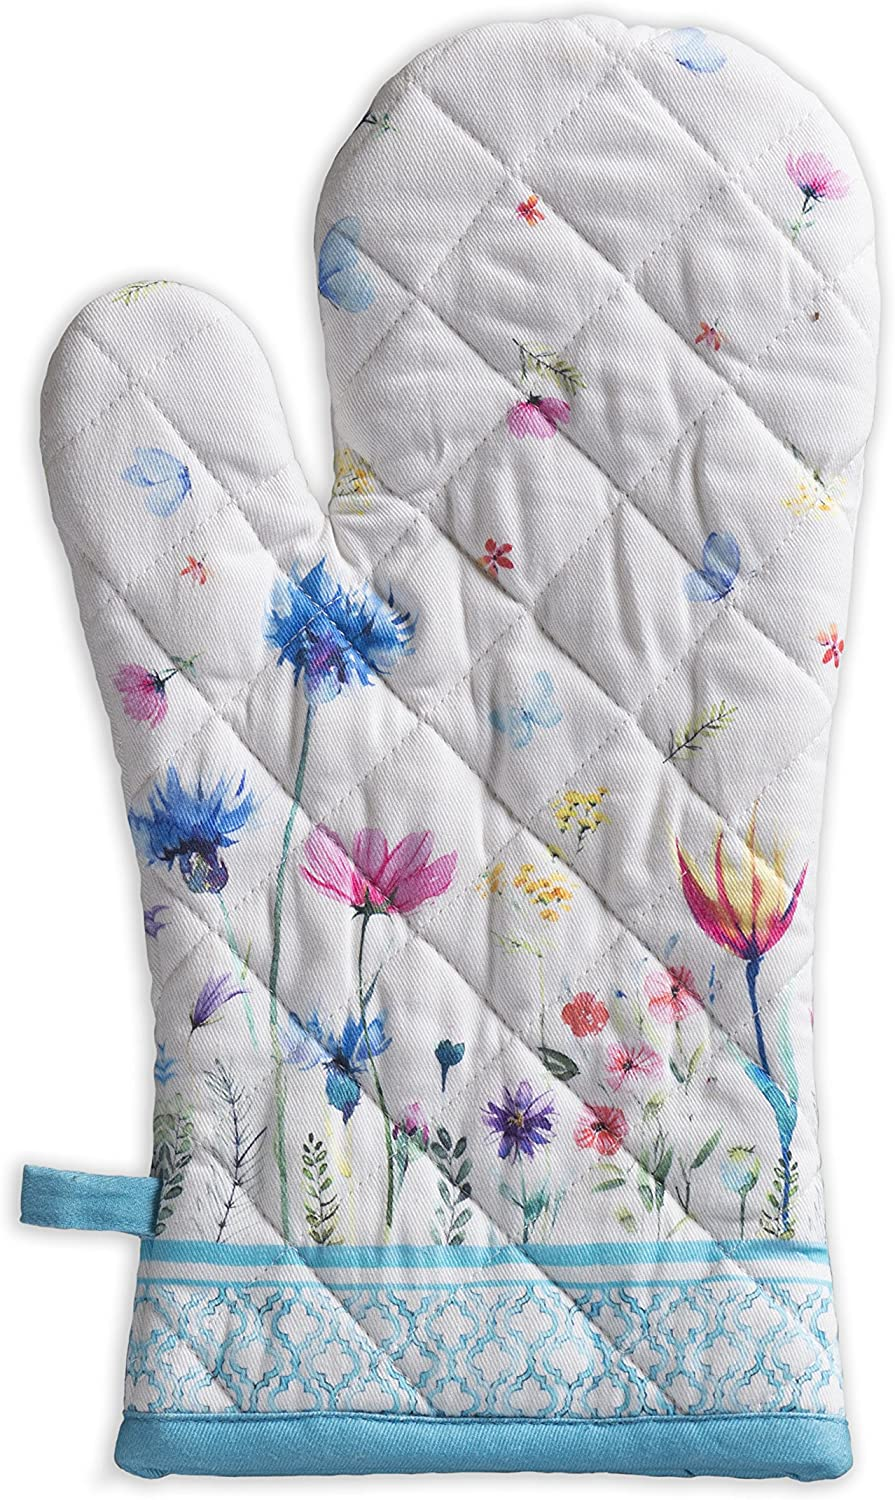 Maison d' Hermine Flower in The Field 100% Cotton Oven Mitt 7.5 Inch by 13 Inch